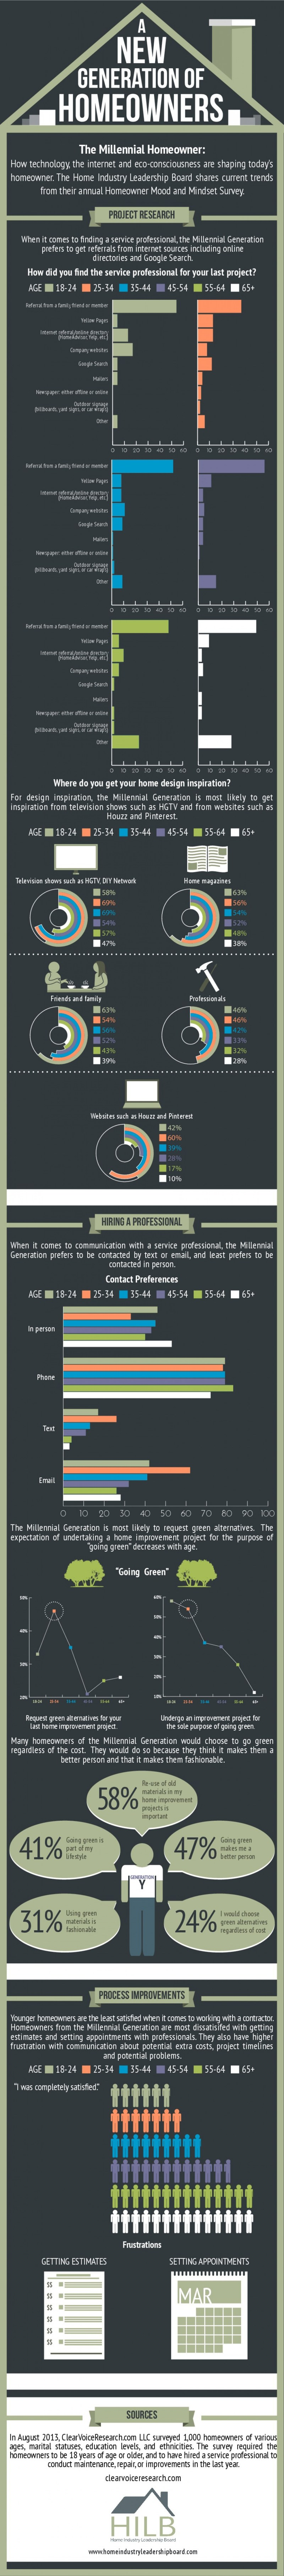 Infographic - Online Behavior Of The Home Improvement Customer